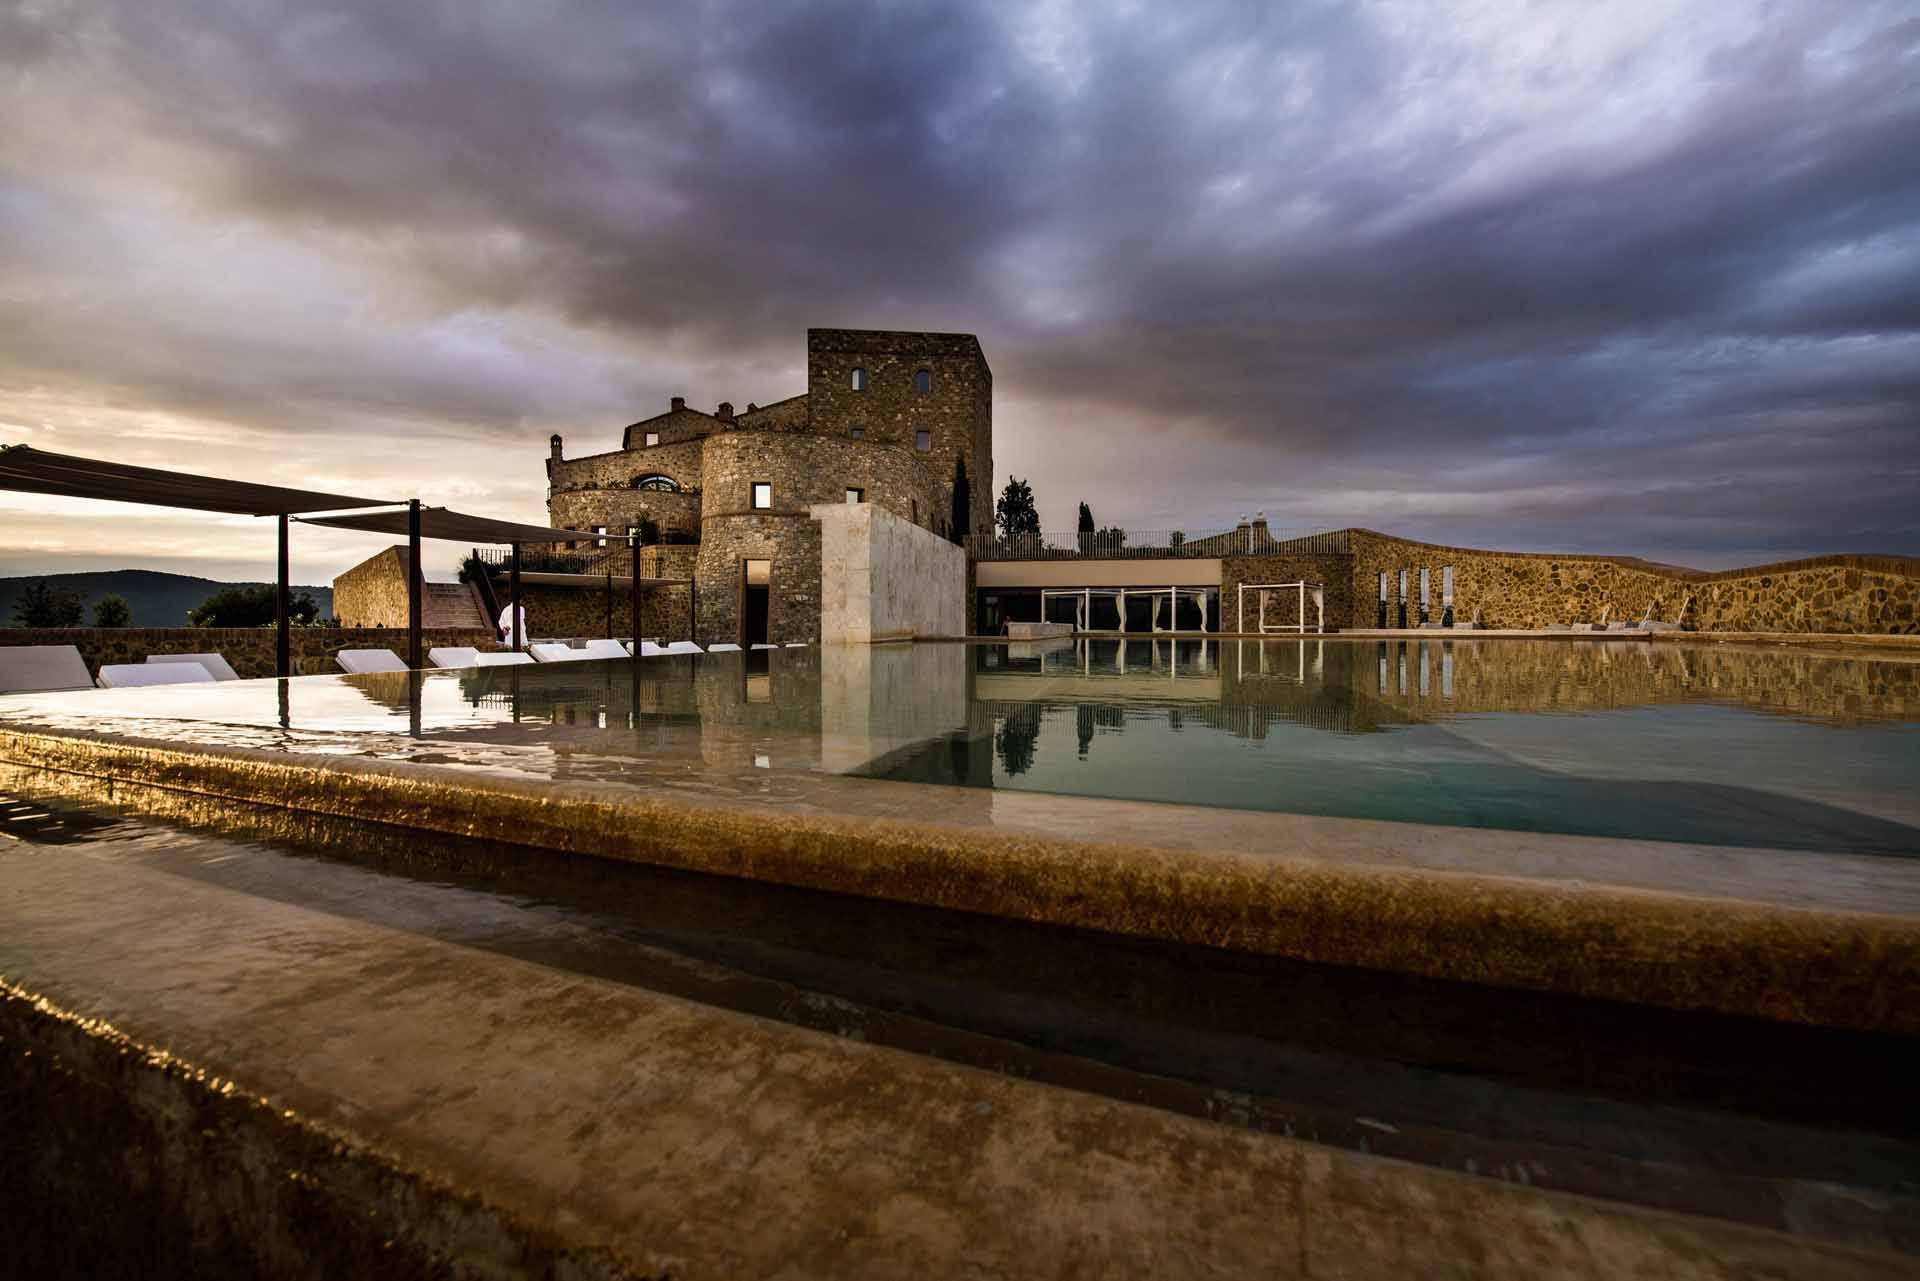 castello di velona resort, thermal spa & winery Montalcino 00014